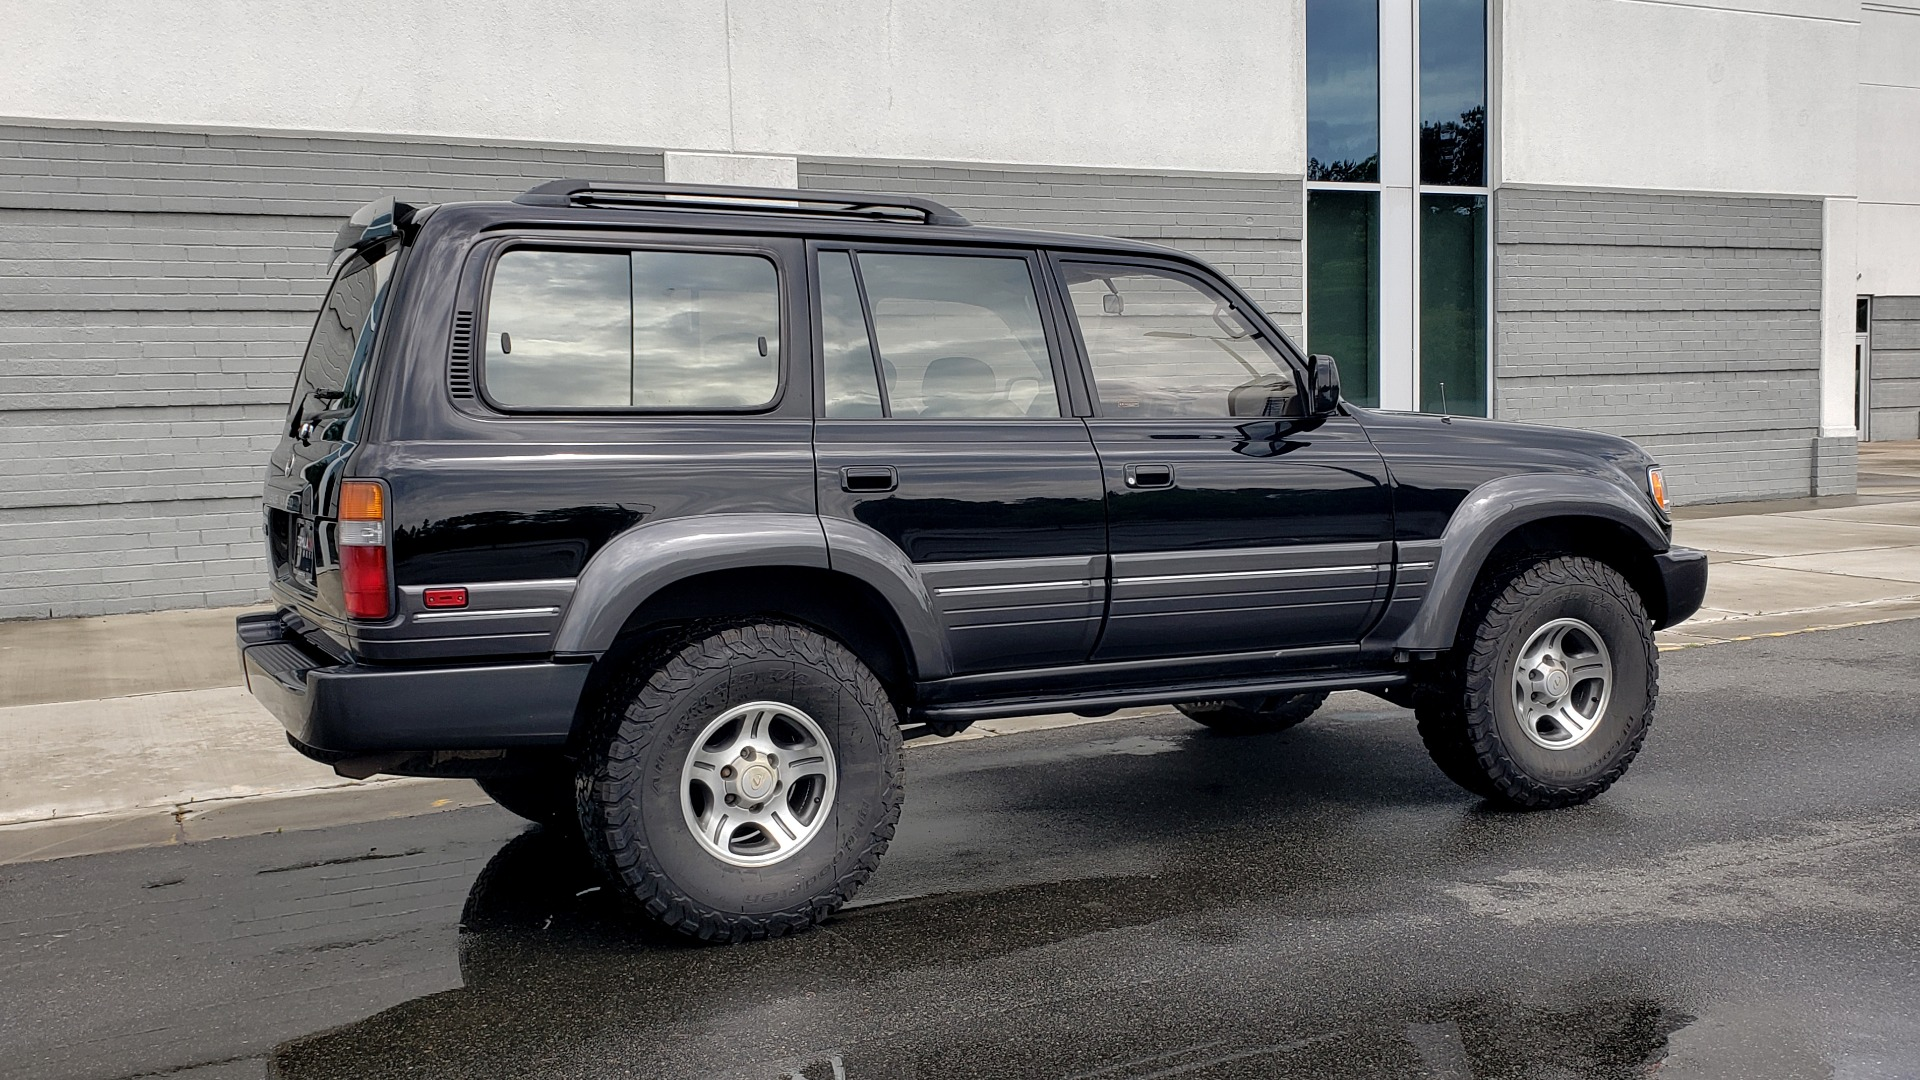 Used 1996 Lexus LX 450 AWD / 4.5L 6-CYL / 4-SPD AUTO / RUNNING BOARDS / NEW BFG TIRES for sale $49,995 at Formula Imports in Charlotte NC 28227 8